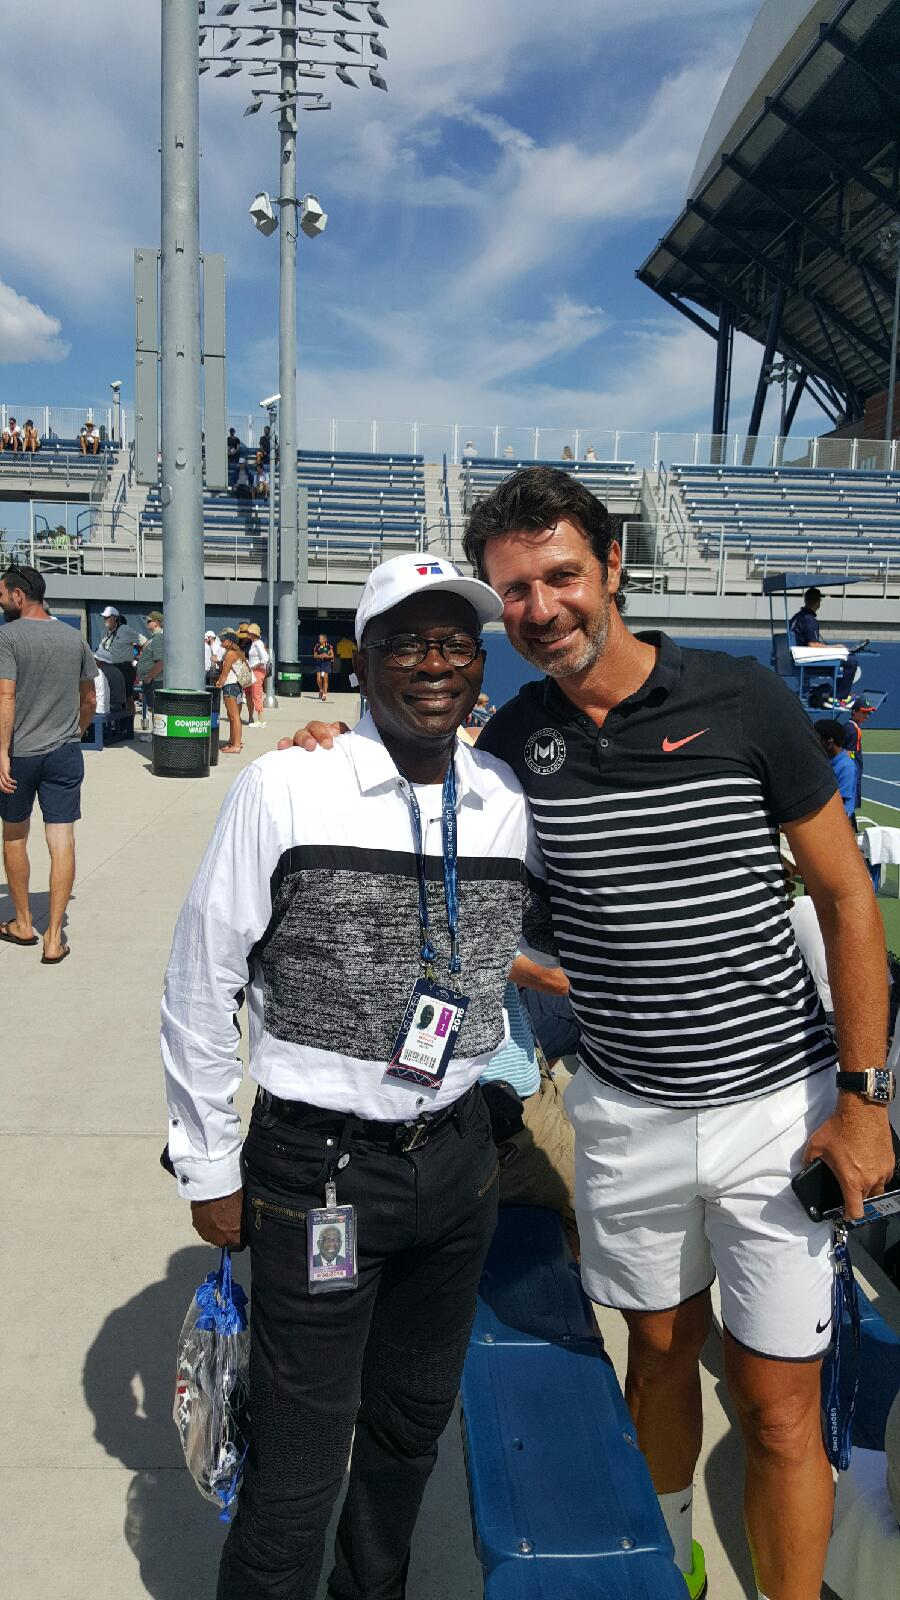 Patrick Mouratoglou Serena Williams coach.JPG